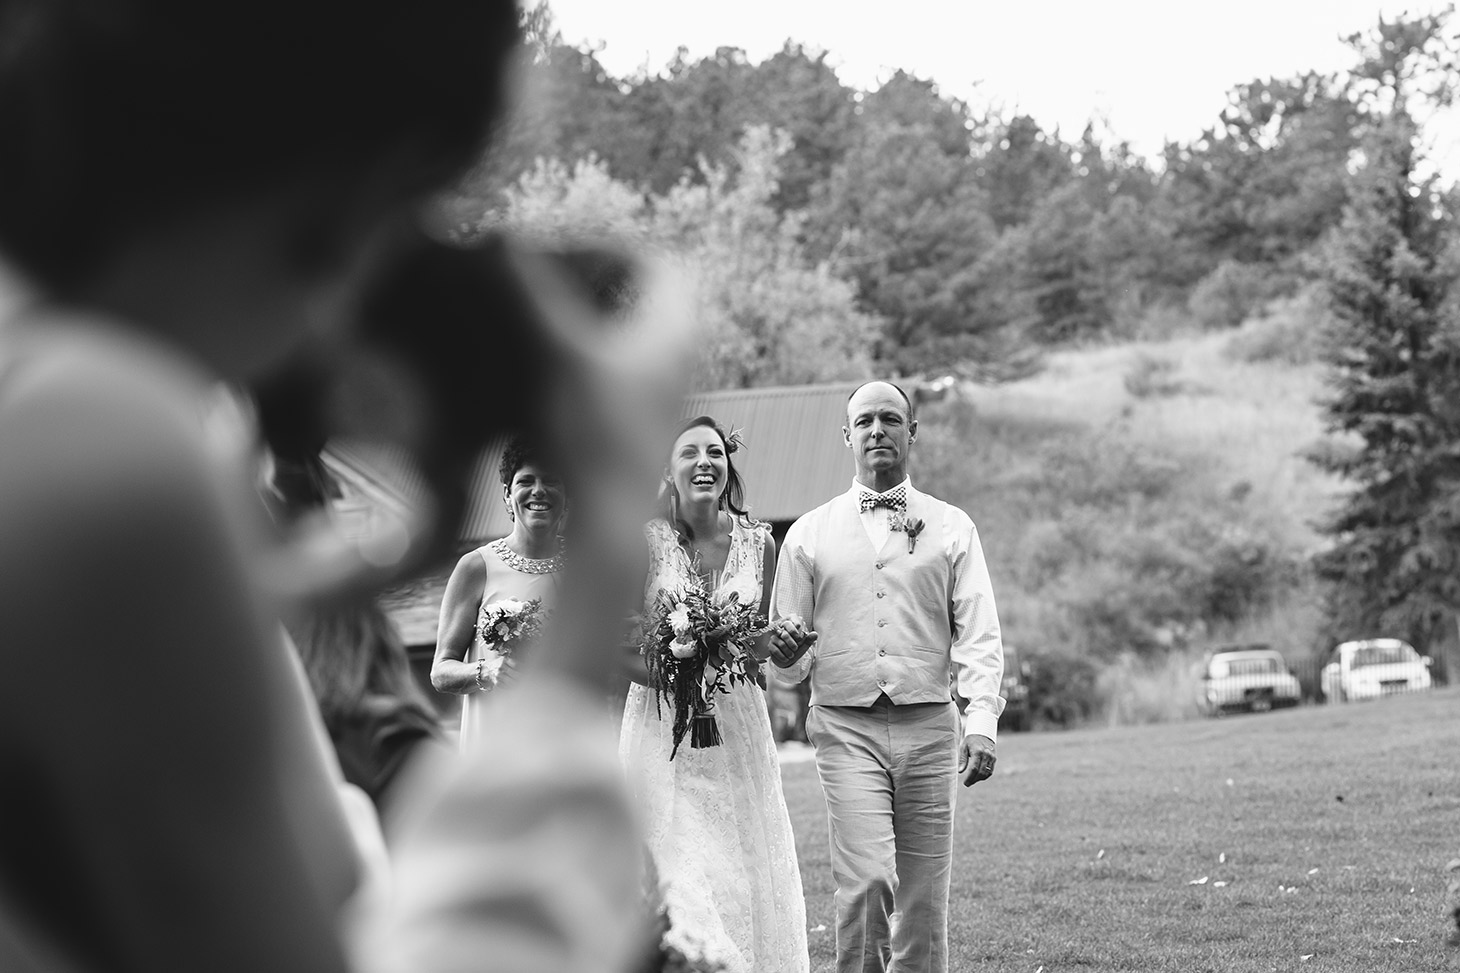 Megan-Newton-Photography-Best-Wedding-Photos-2015-287